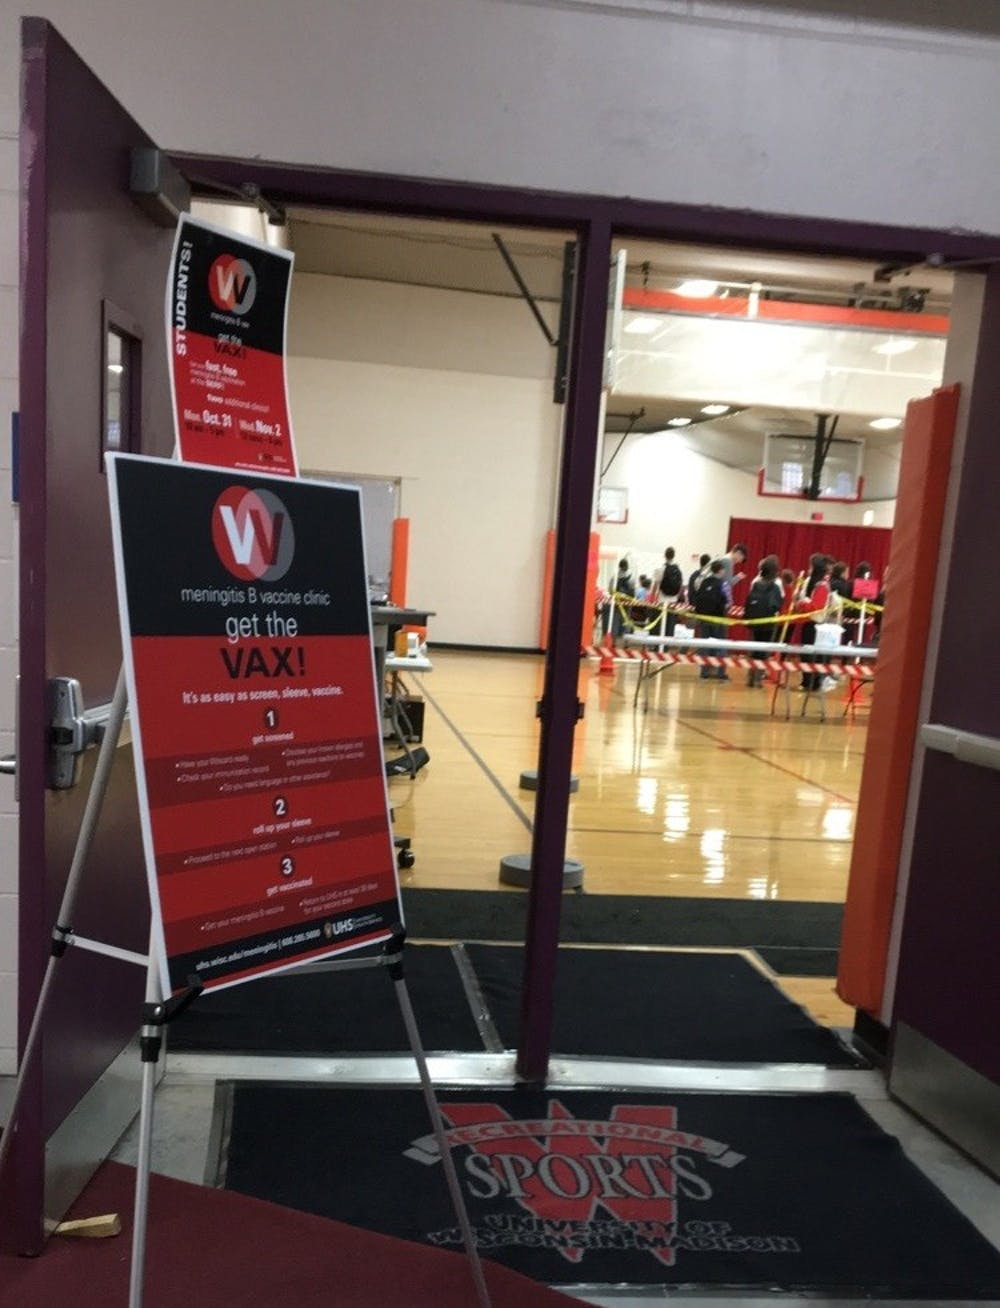 From Oct. 20 until Nov. 2, UW-Madison's University Health Services vaccinated roughly 20,400 students for meningitis B at the Southeast Recreational Facility with the help of student volunteers.